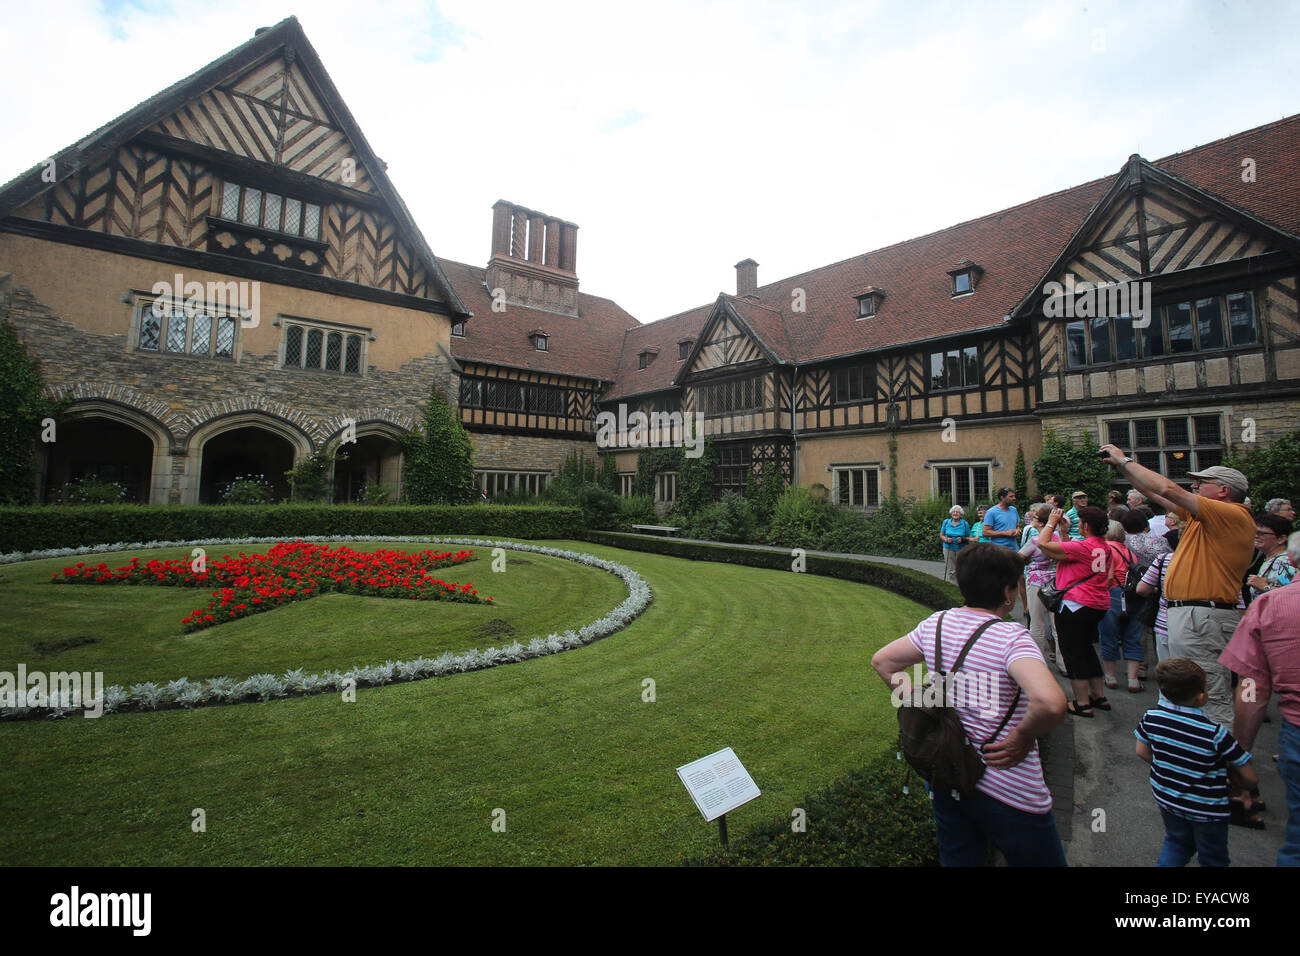 (150725) -- POTSDAM, July 25, 2015 (Xinhua) -- Visitors are seen at the Cecilienhof Palace in Potsdam, Germany, - Stock Image